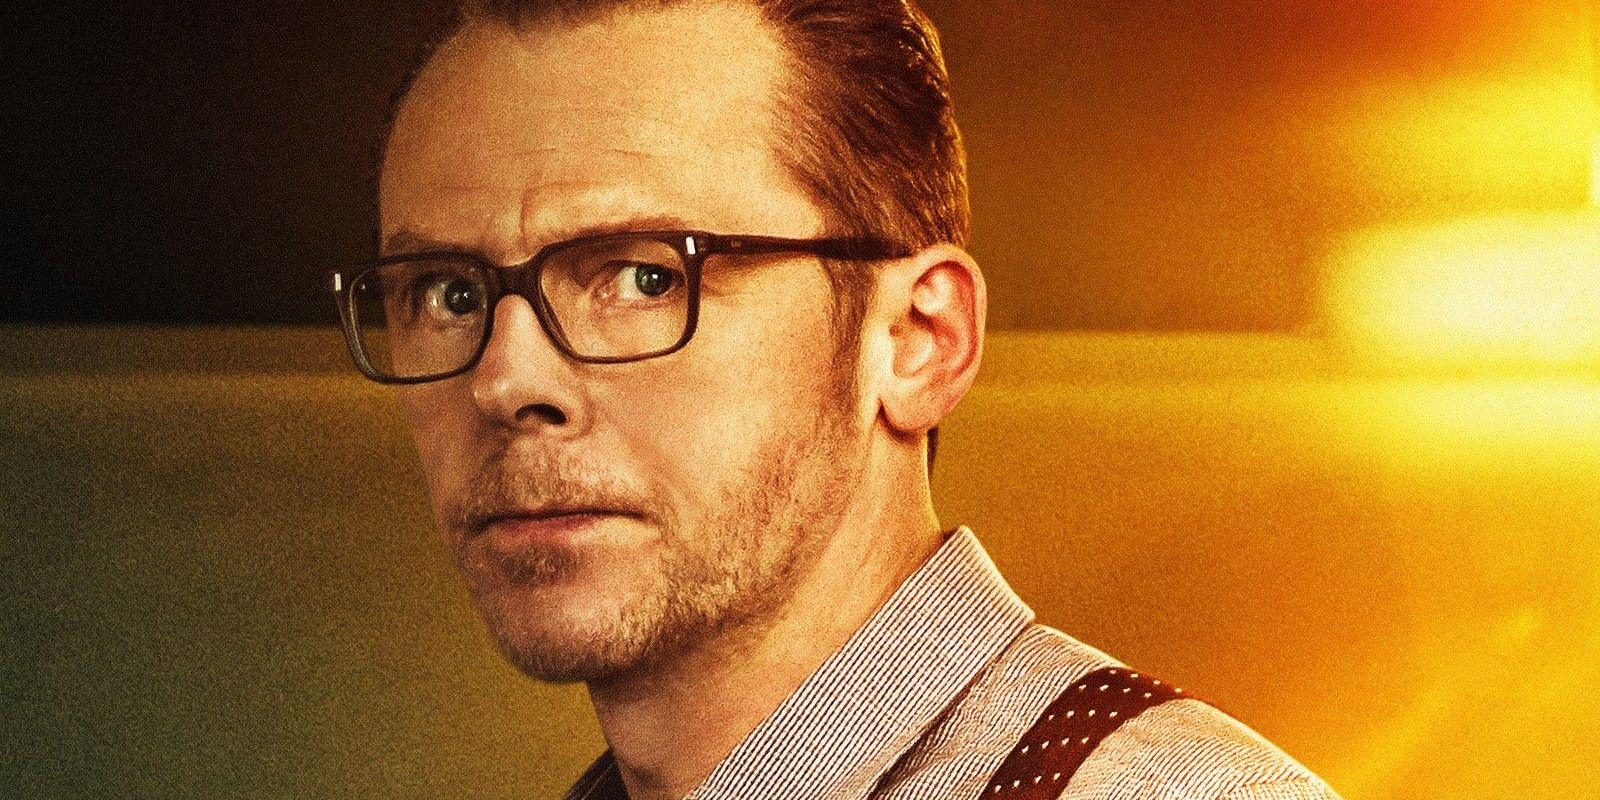 Simon Pegg Shares Funny Mission: Impossible 7 Pre-Filming Routine Video